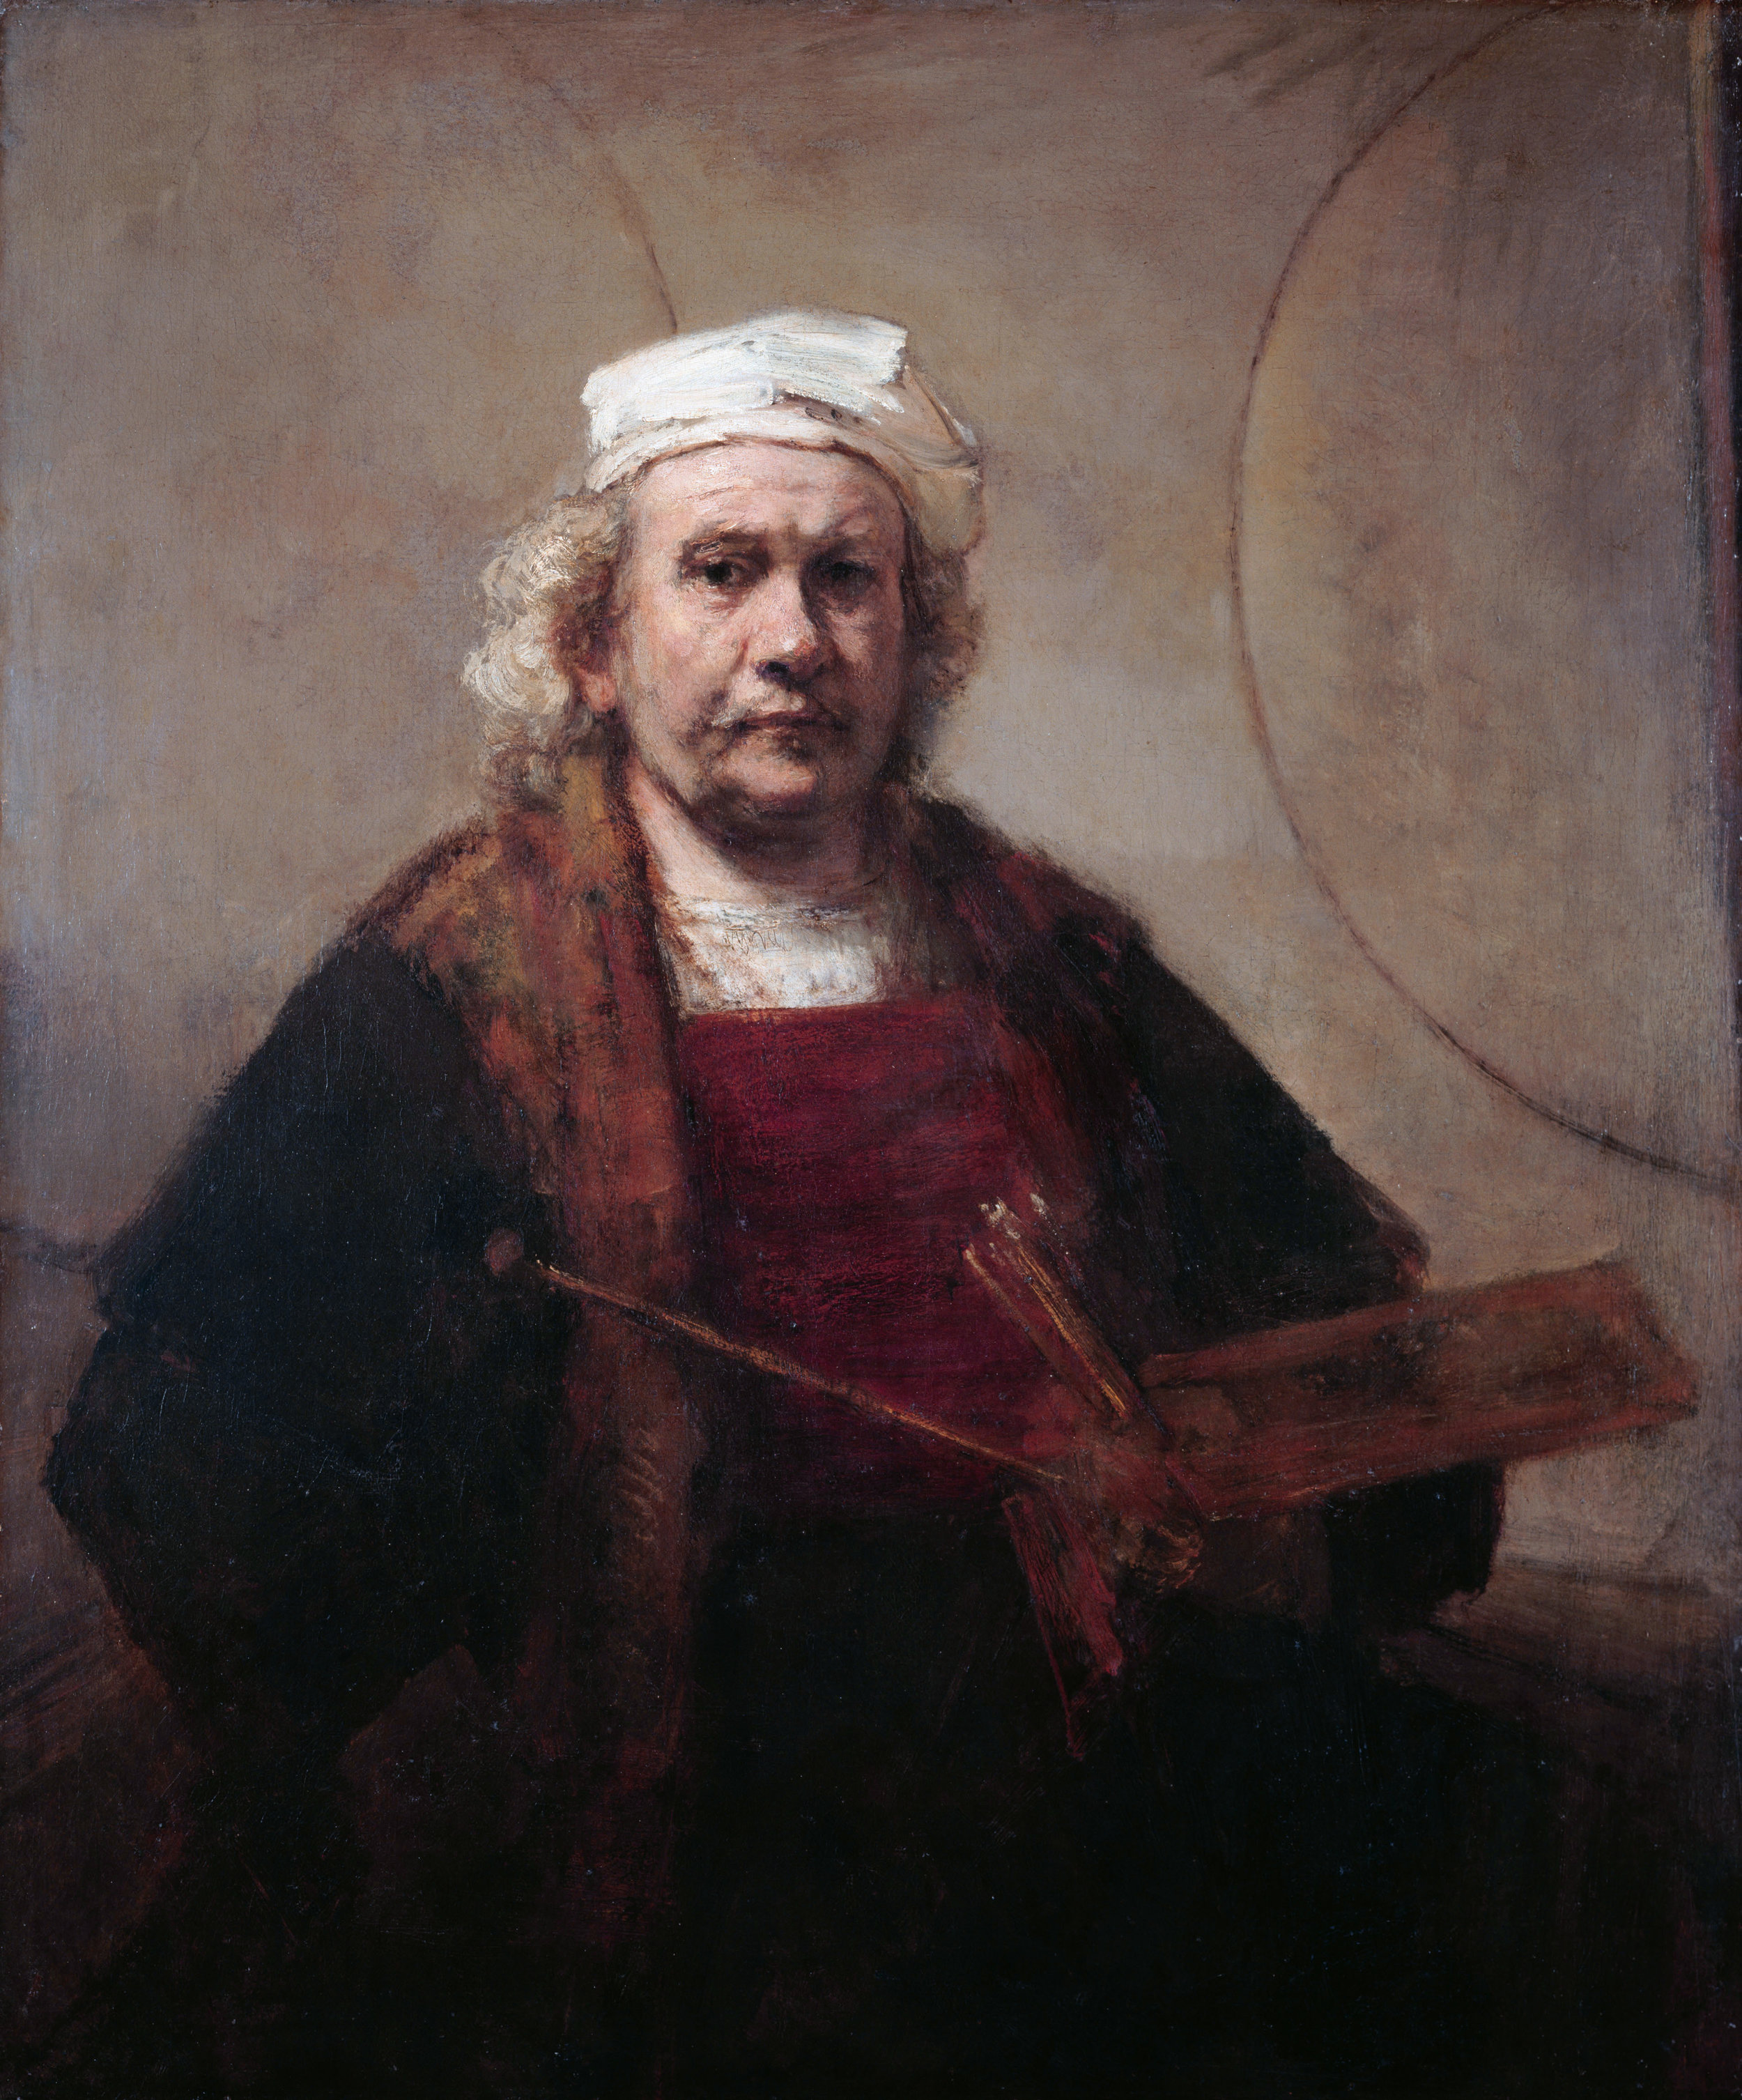 Rembrandt (1665-69)   Self Portrait with two circles.  Kenwood House, London.  Also see:  The Rembrandt self portraits  in the Arts as a Way of Knowing.